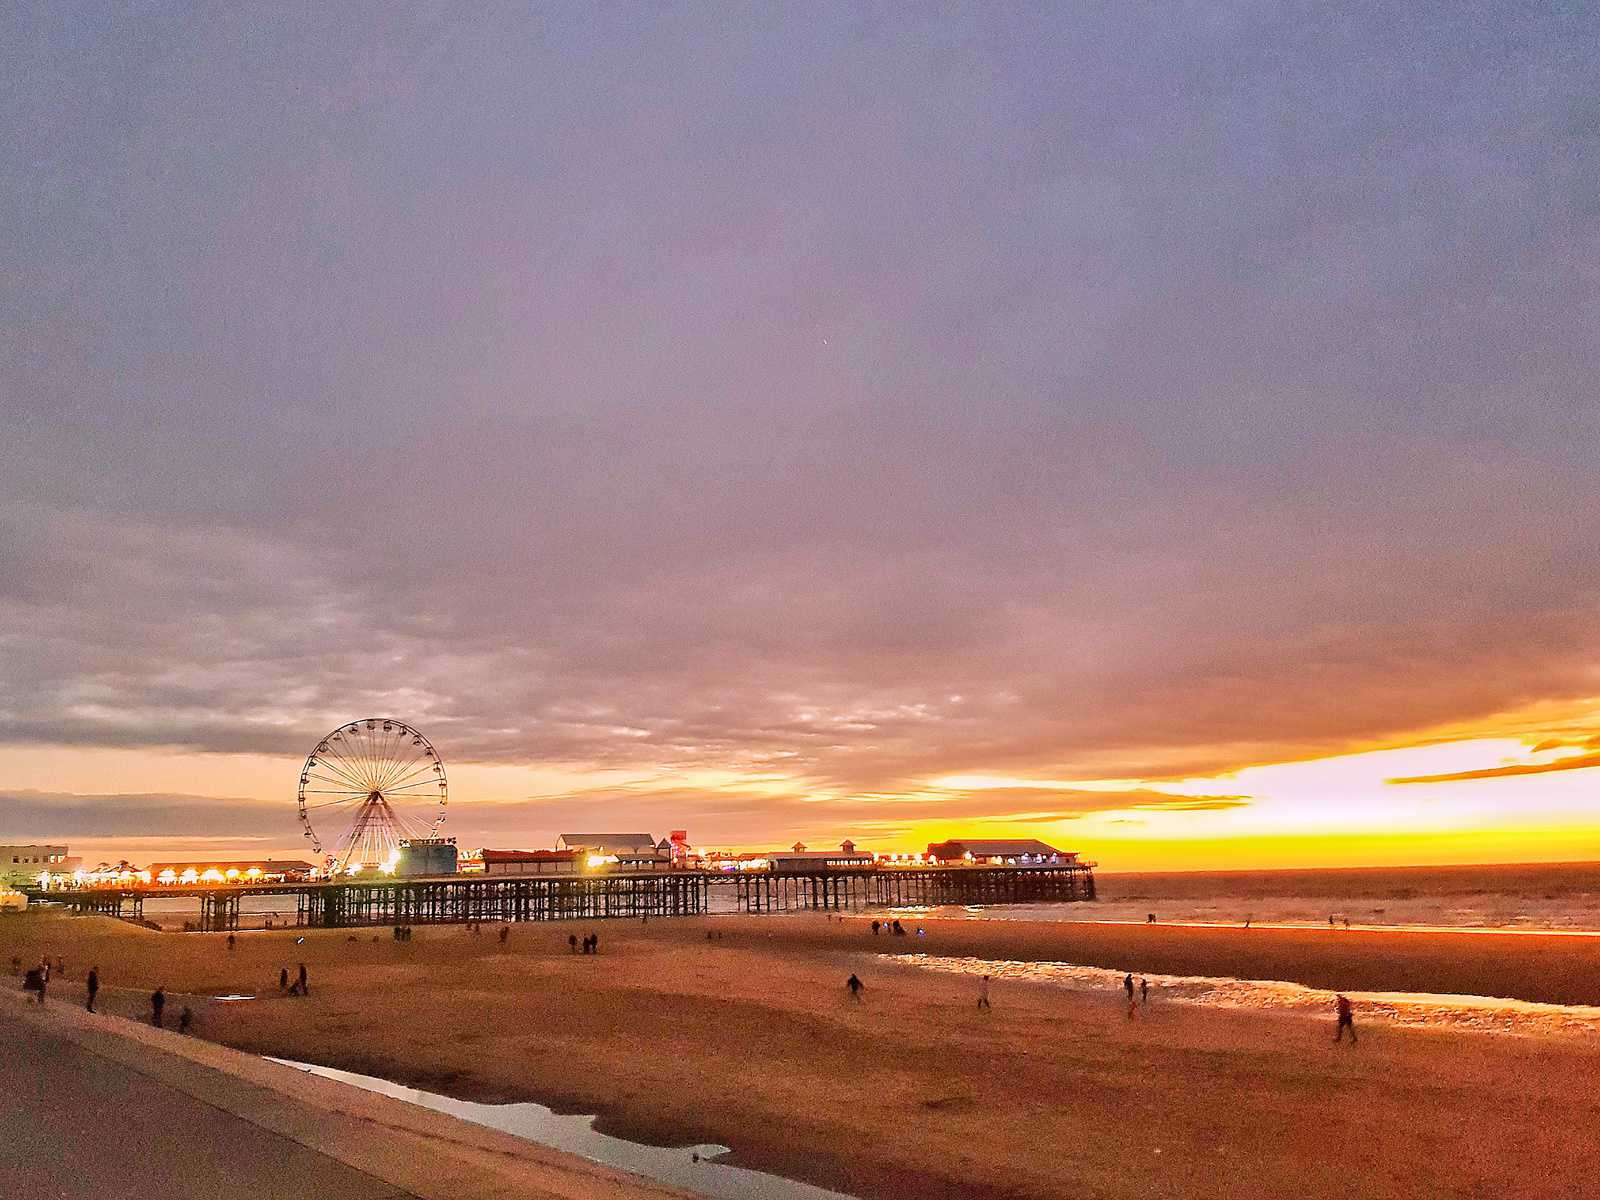 Coral Island Blackpool sunset